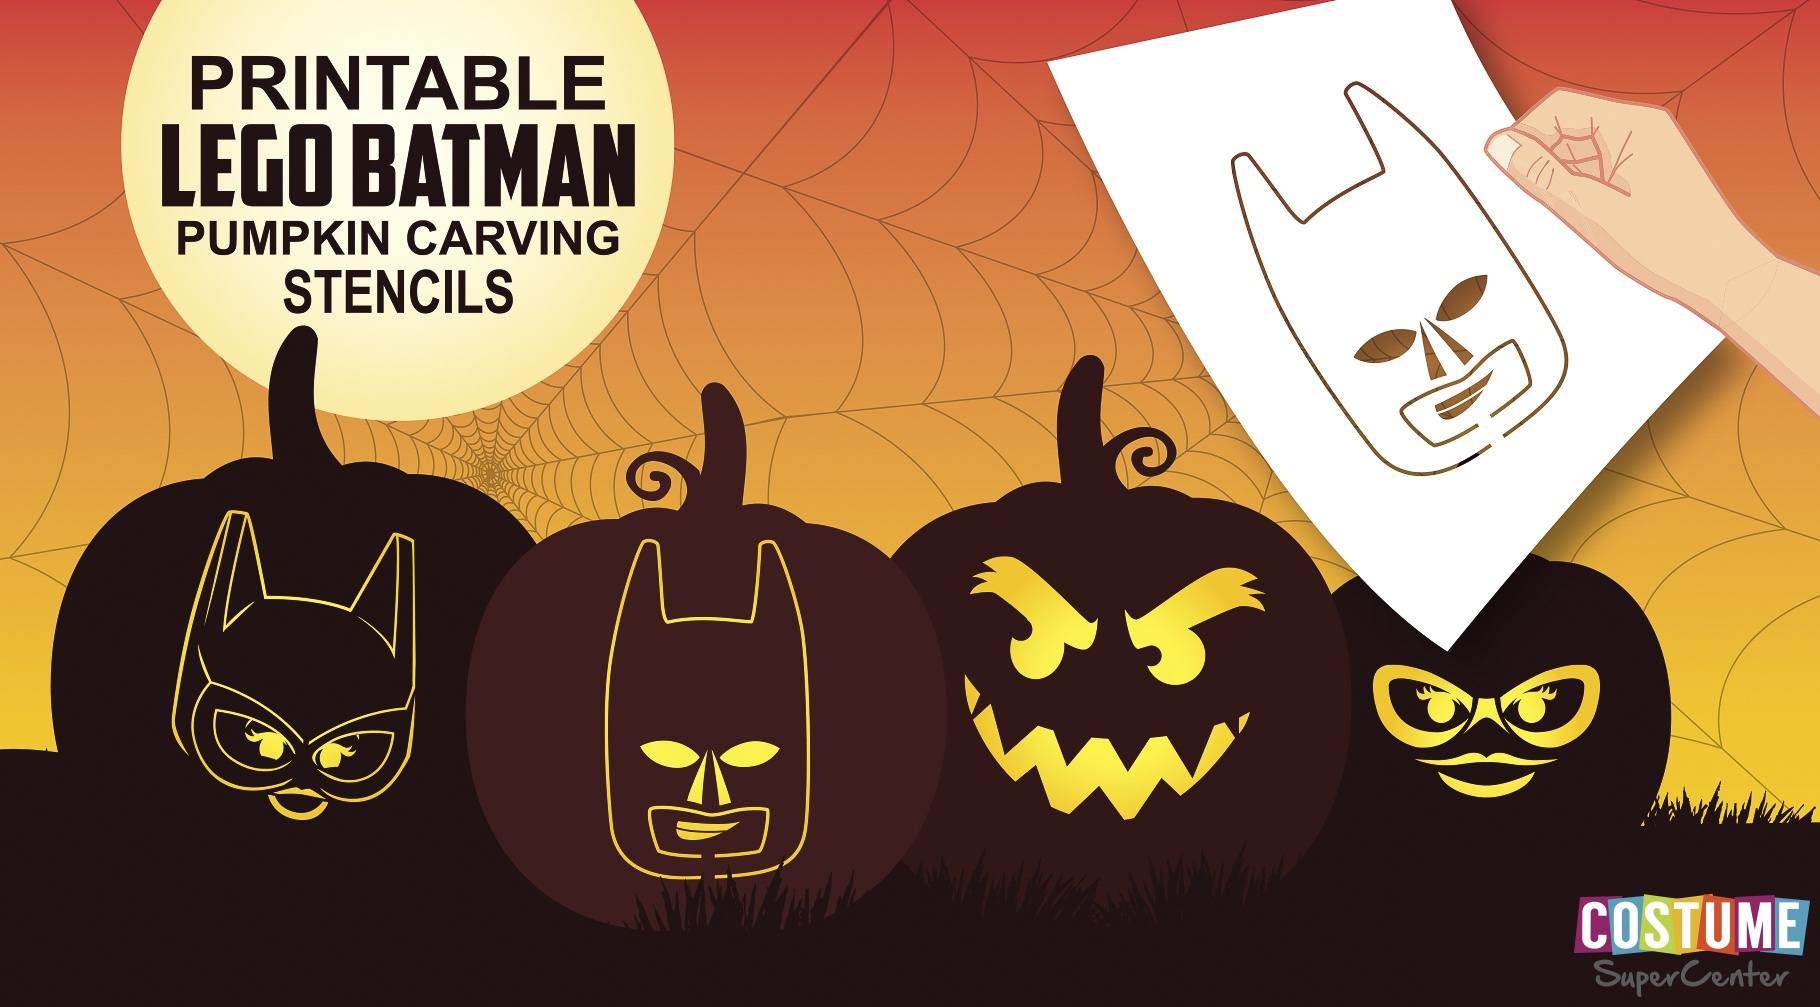 Fun And Free Printable Themed Pumpkin Carving Stencils — All For The - Superhero Pumpkin Stencils Free Printable